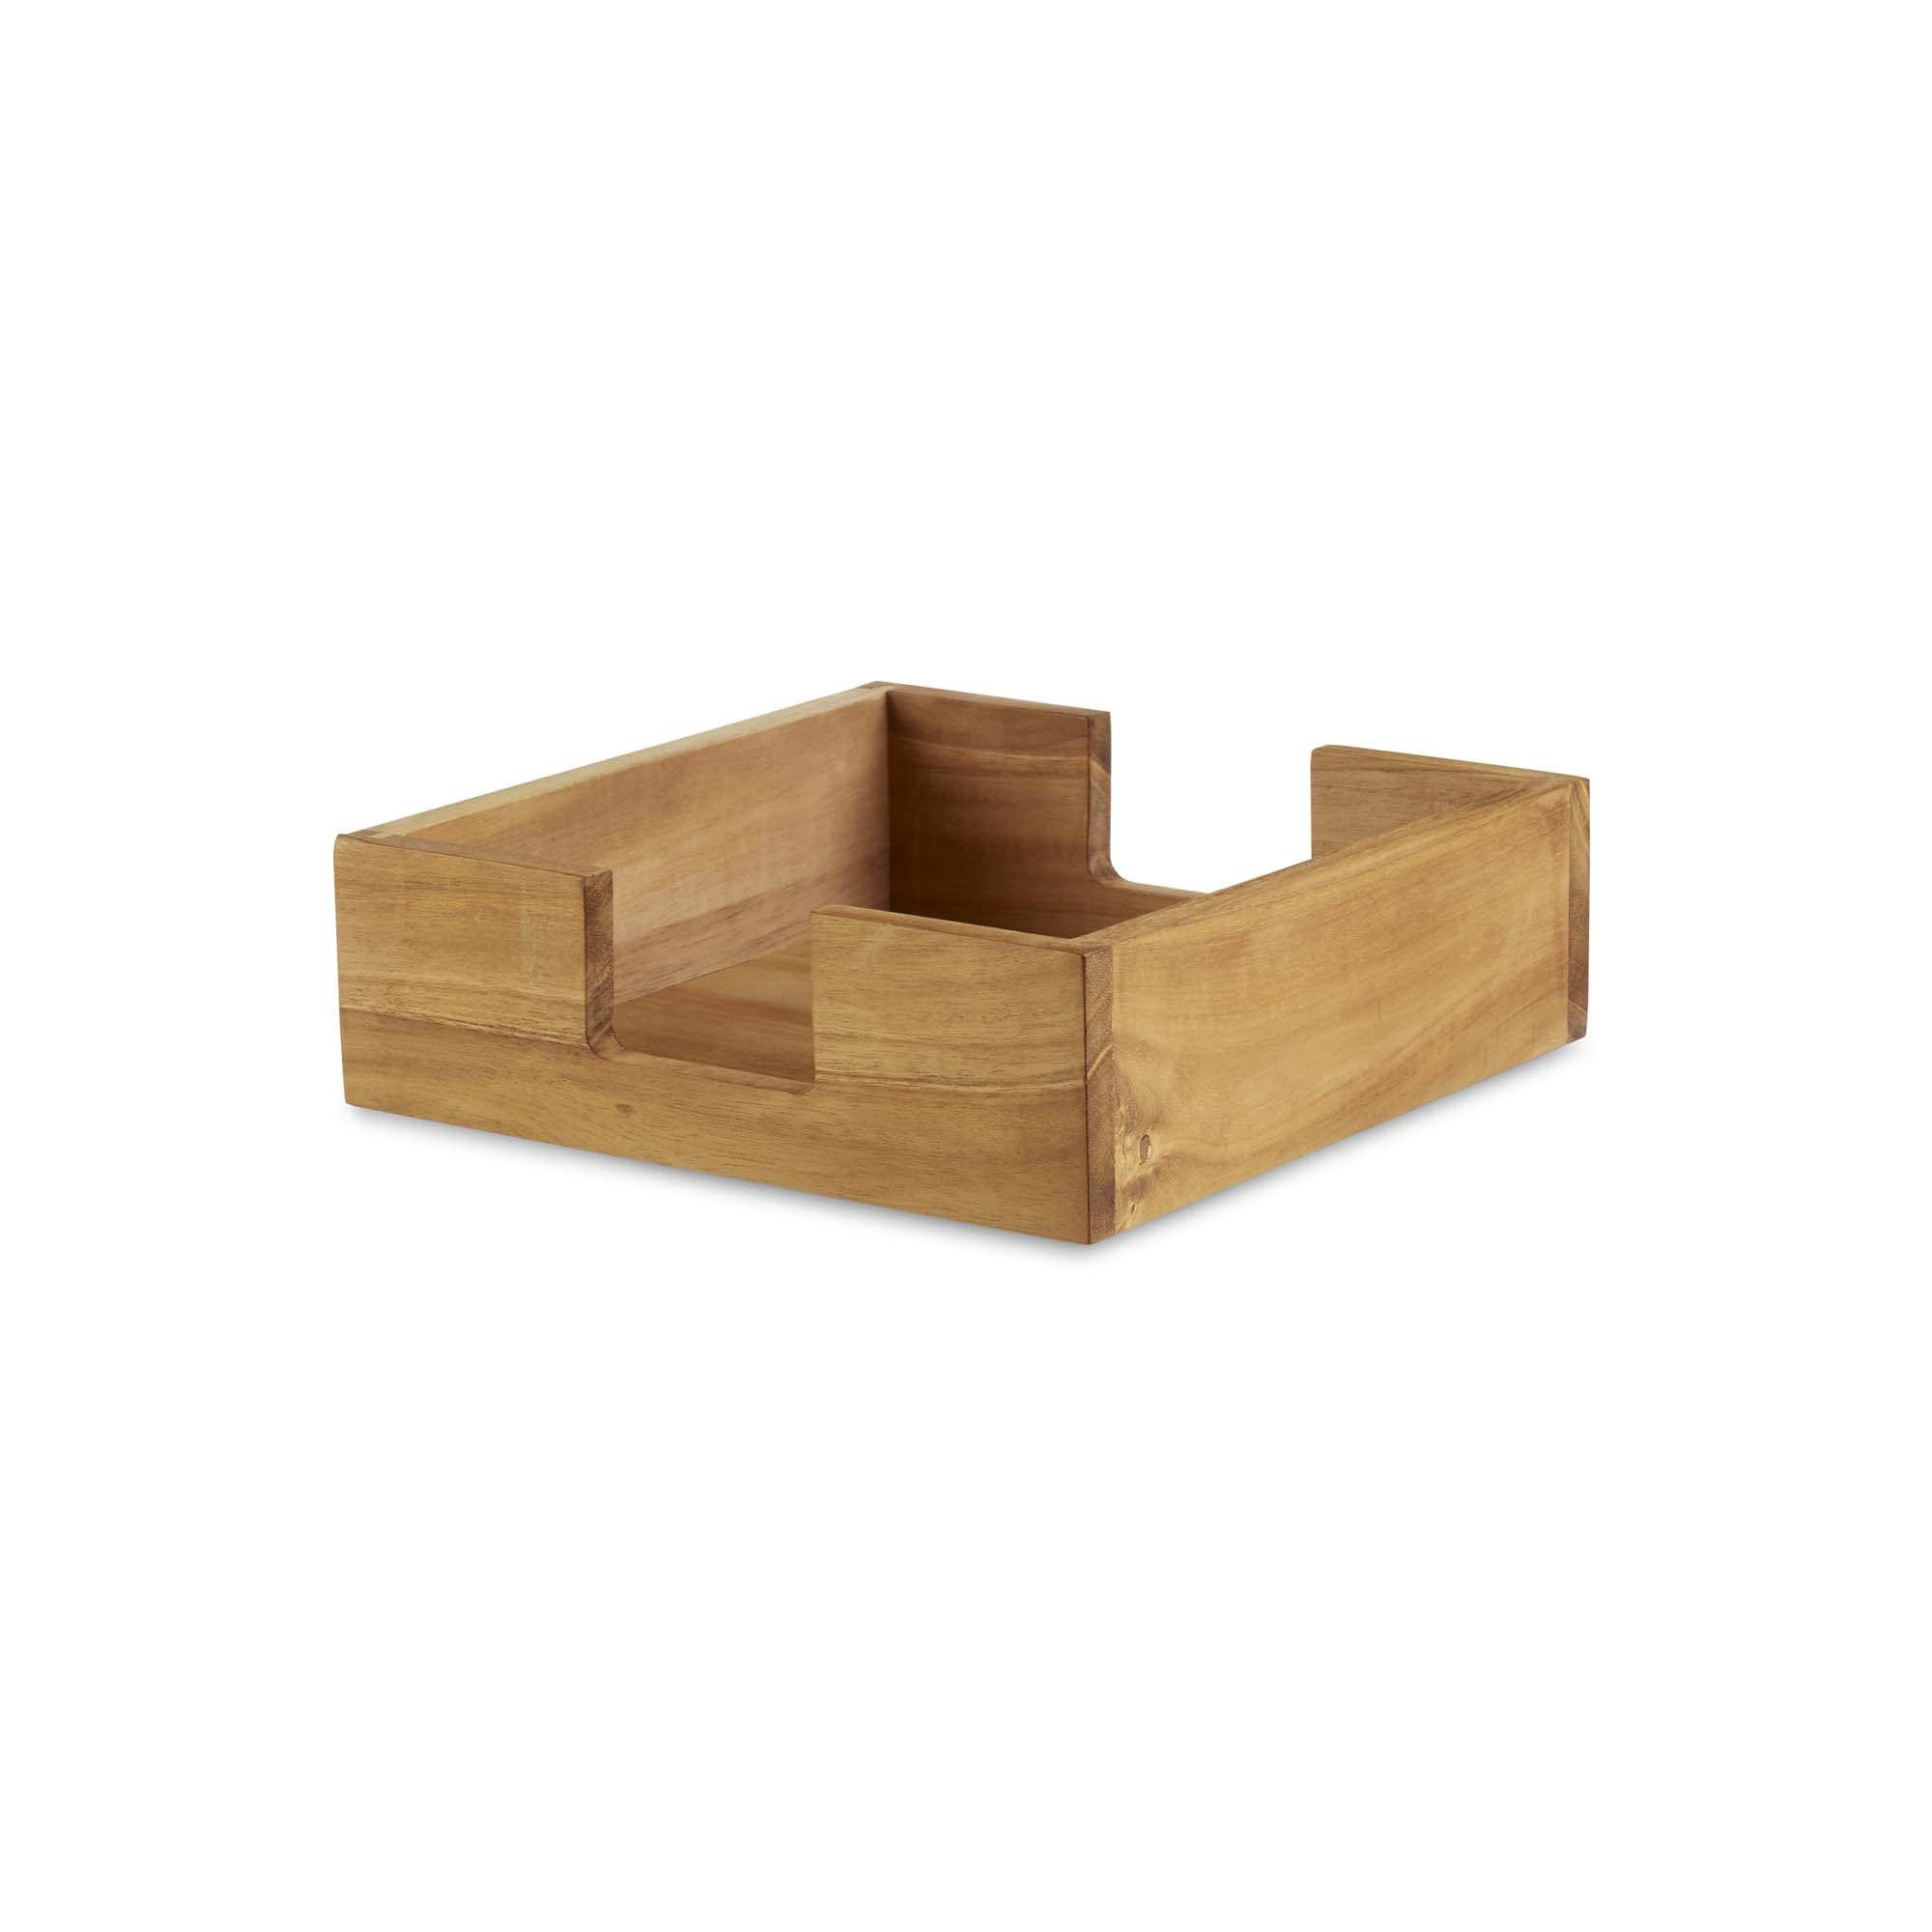 Design Ideas Takara Napkin Trough, Natural Teak Wood Napkin Holder for Table, Brown